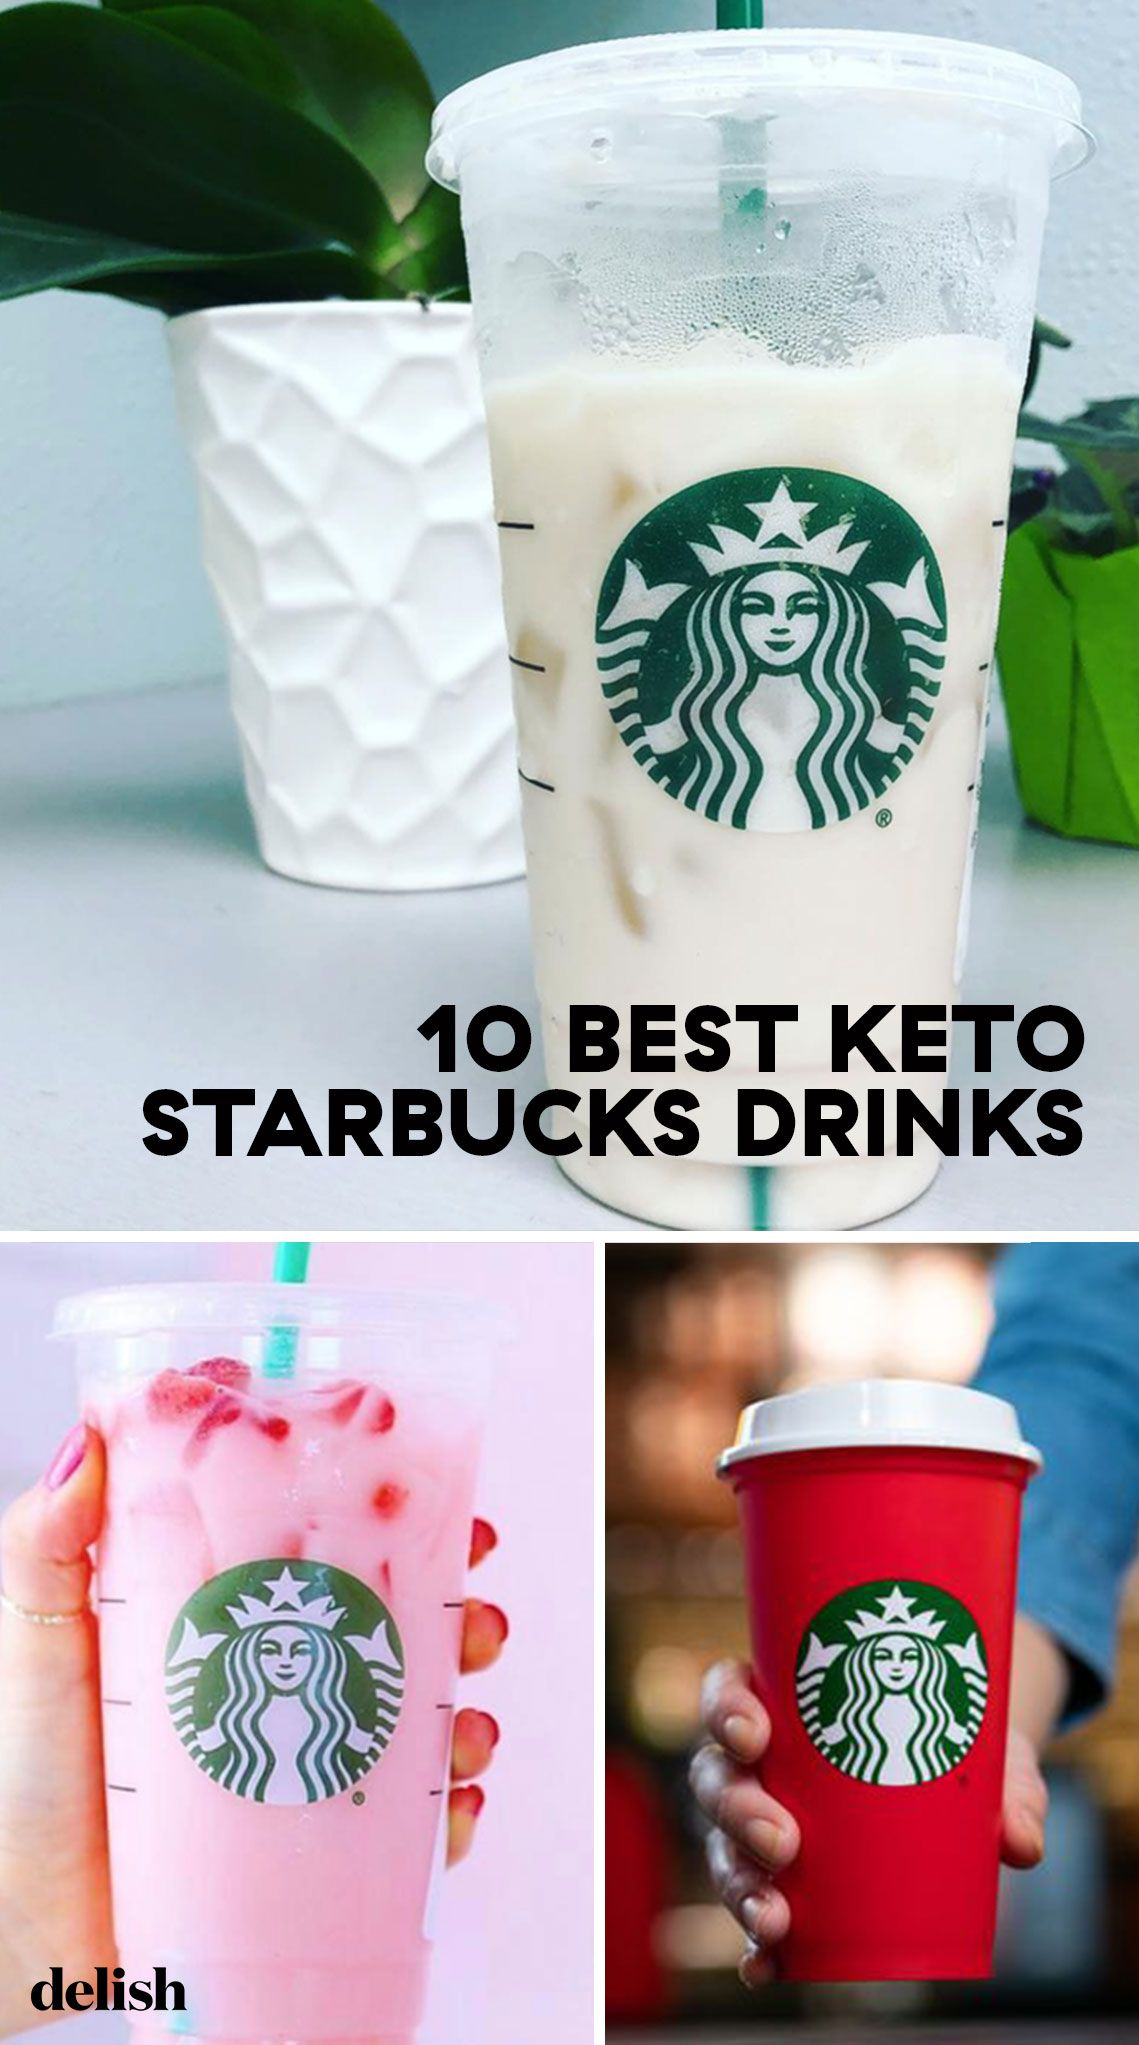 The Best Keto-Friendly Drinks To Order At Starbucks